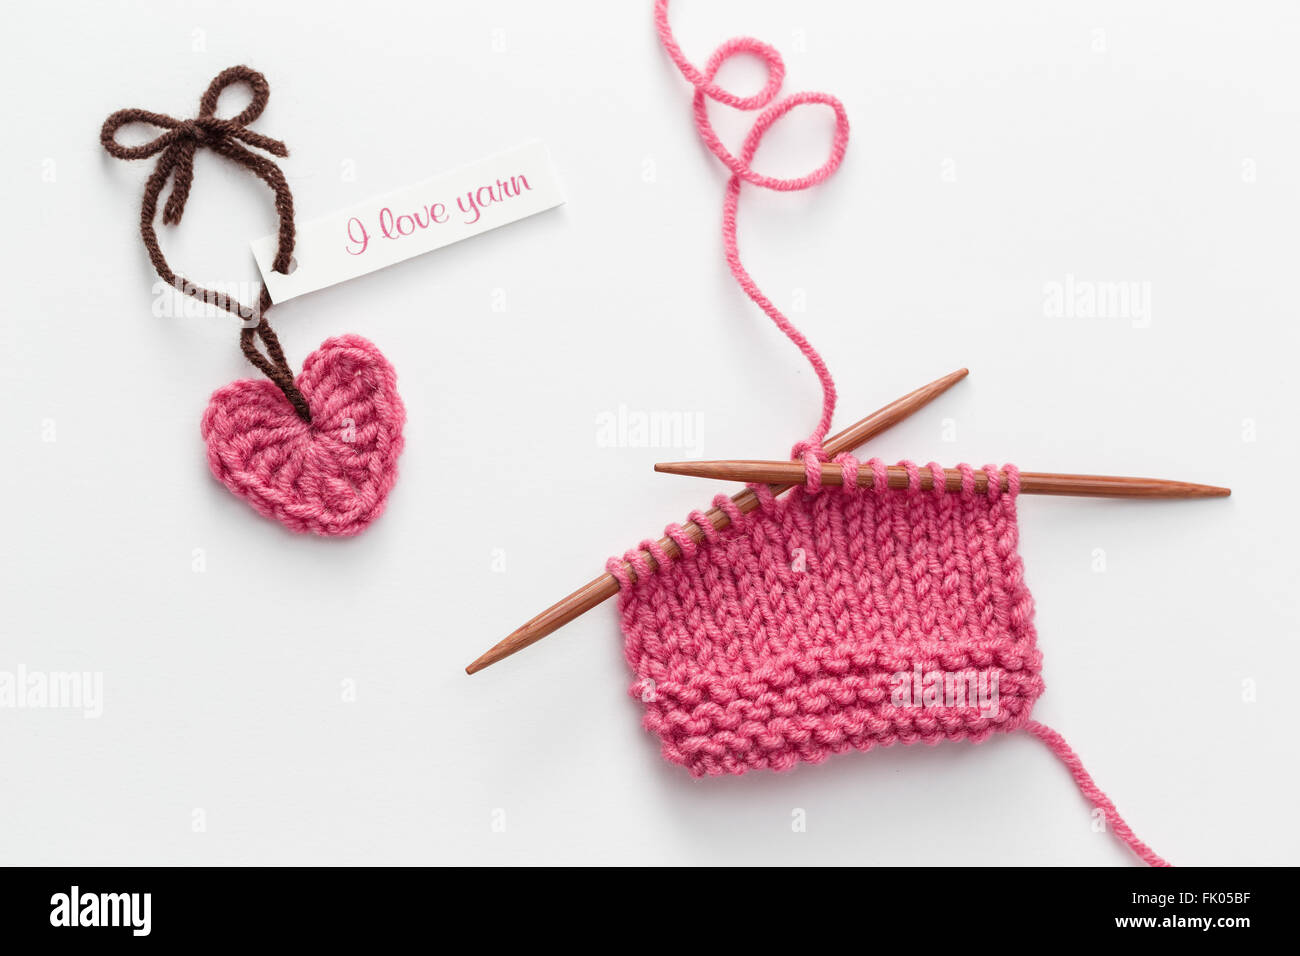 Double Crochet Imágenes De Stock & Double Crochet Fotos De Stock - Alamy